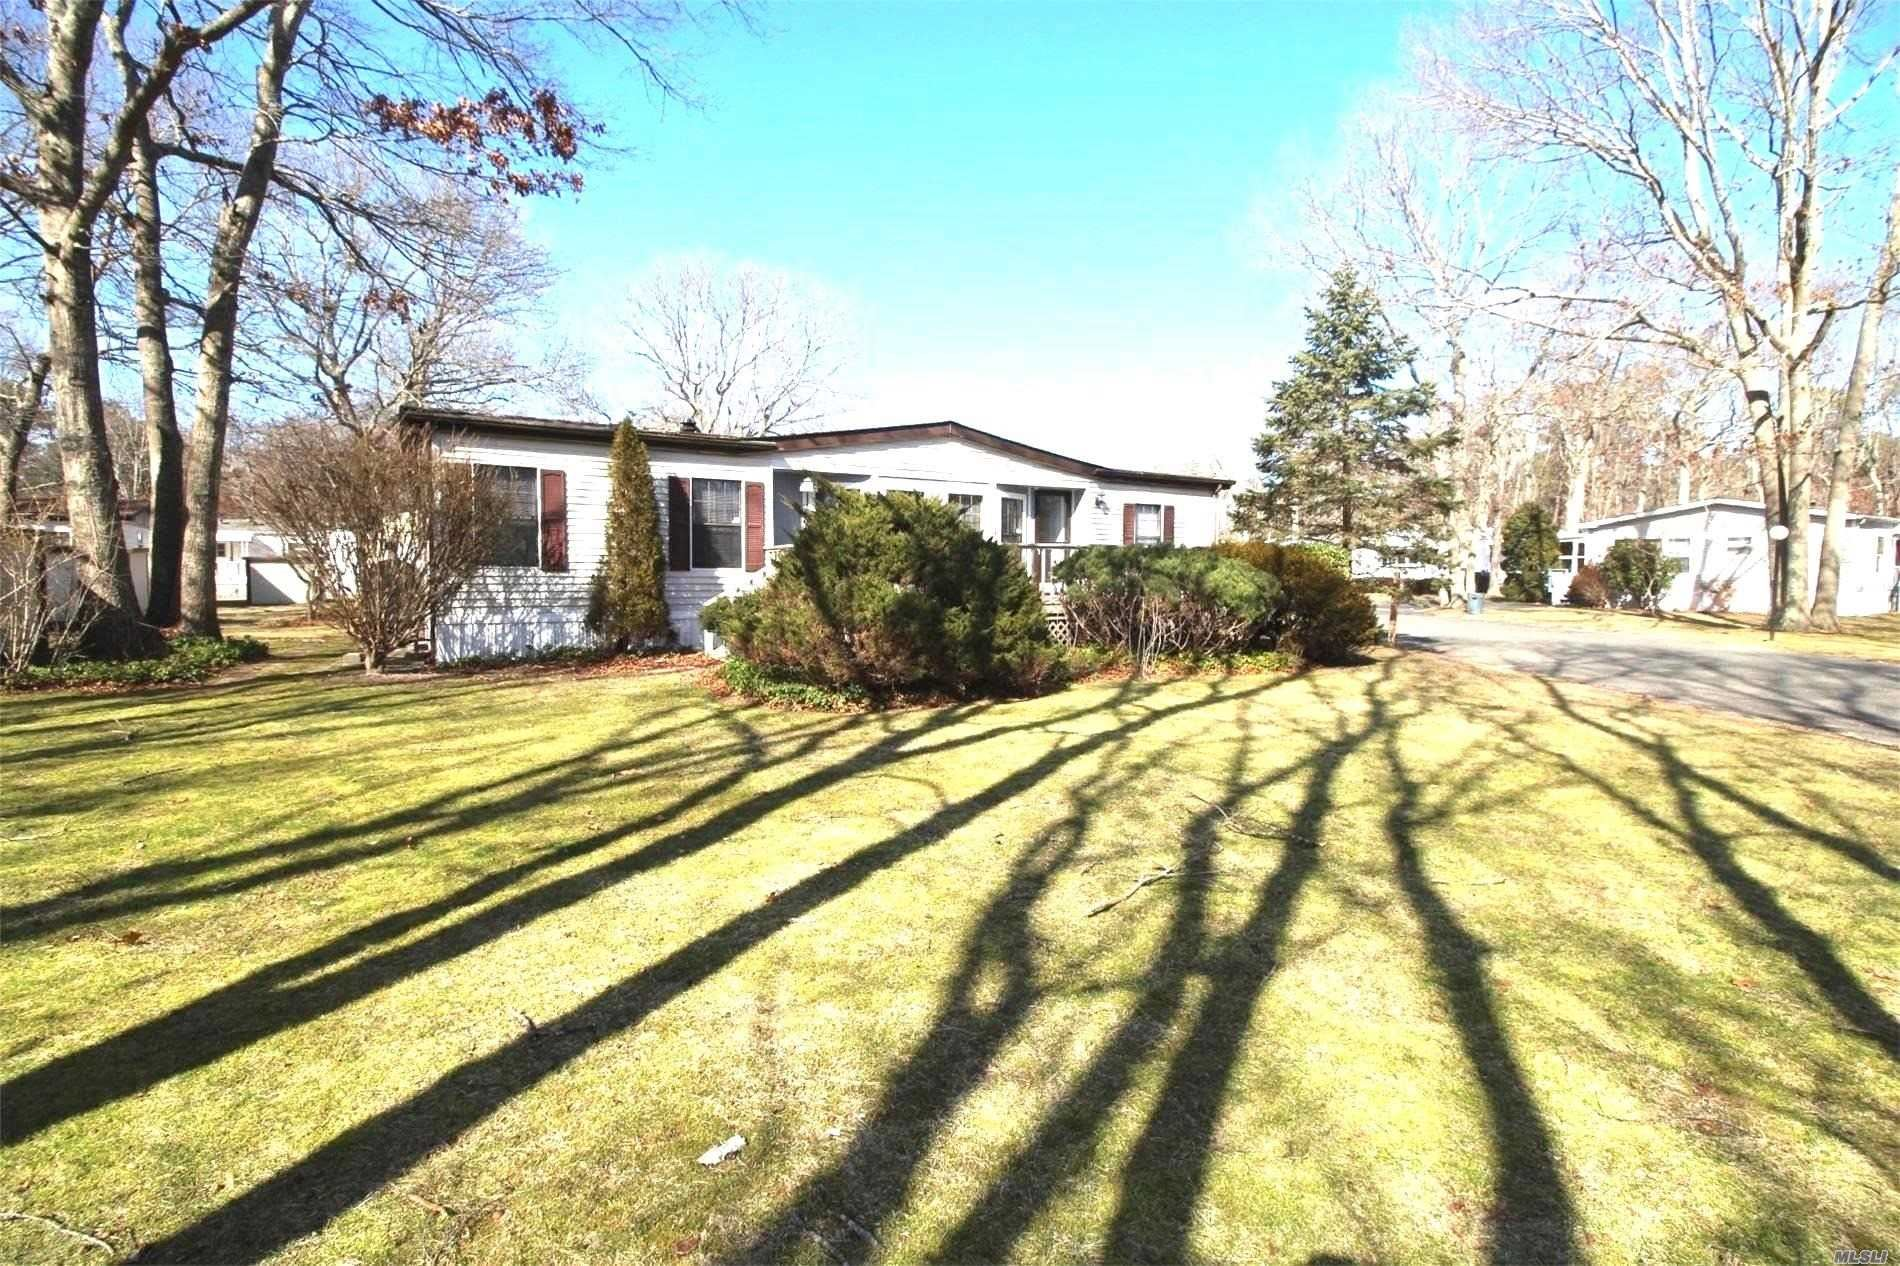 93 Spruce Street, East Quogue, NY 11942 - MLS#: 3203661